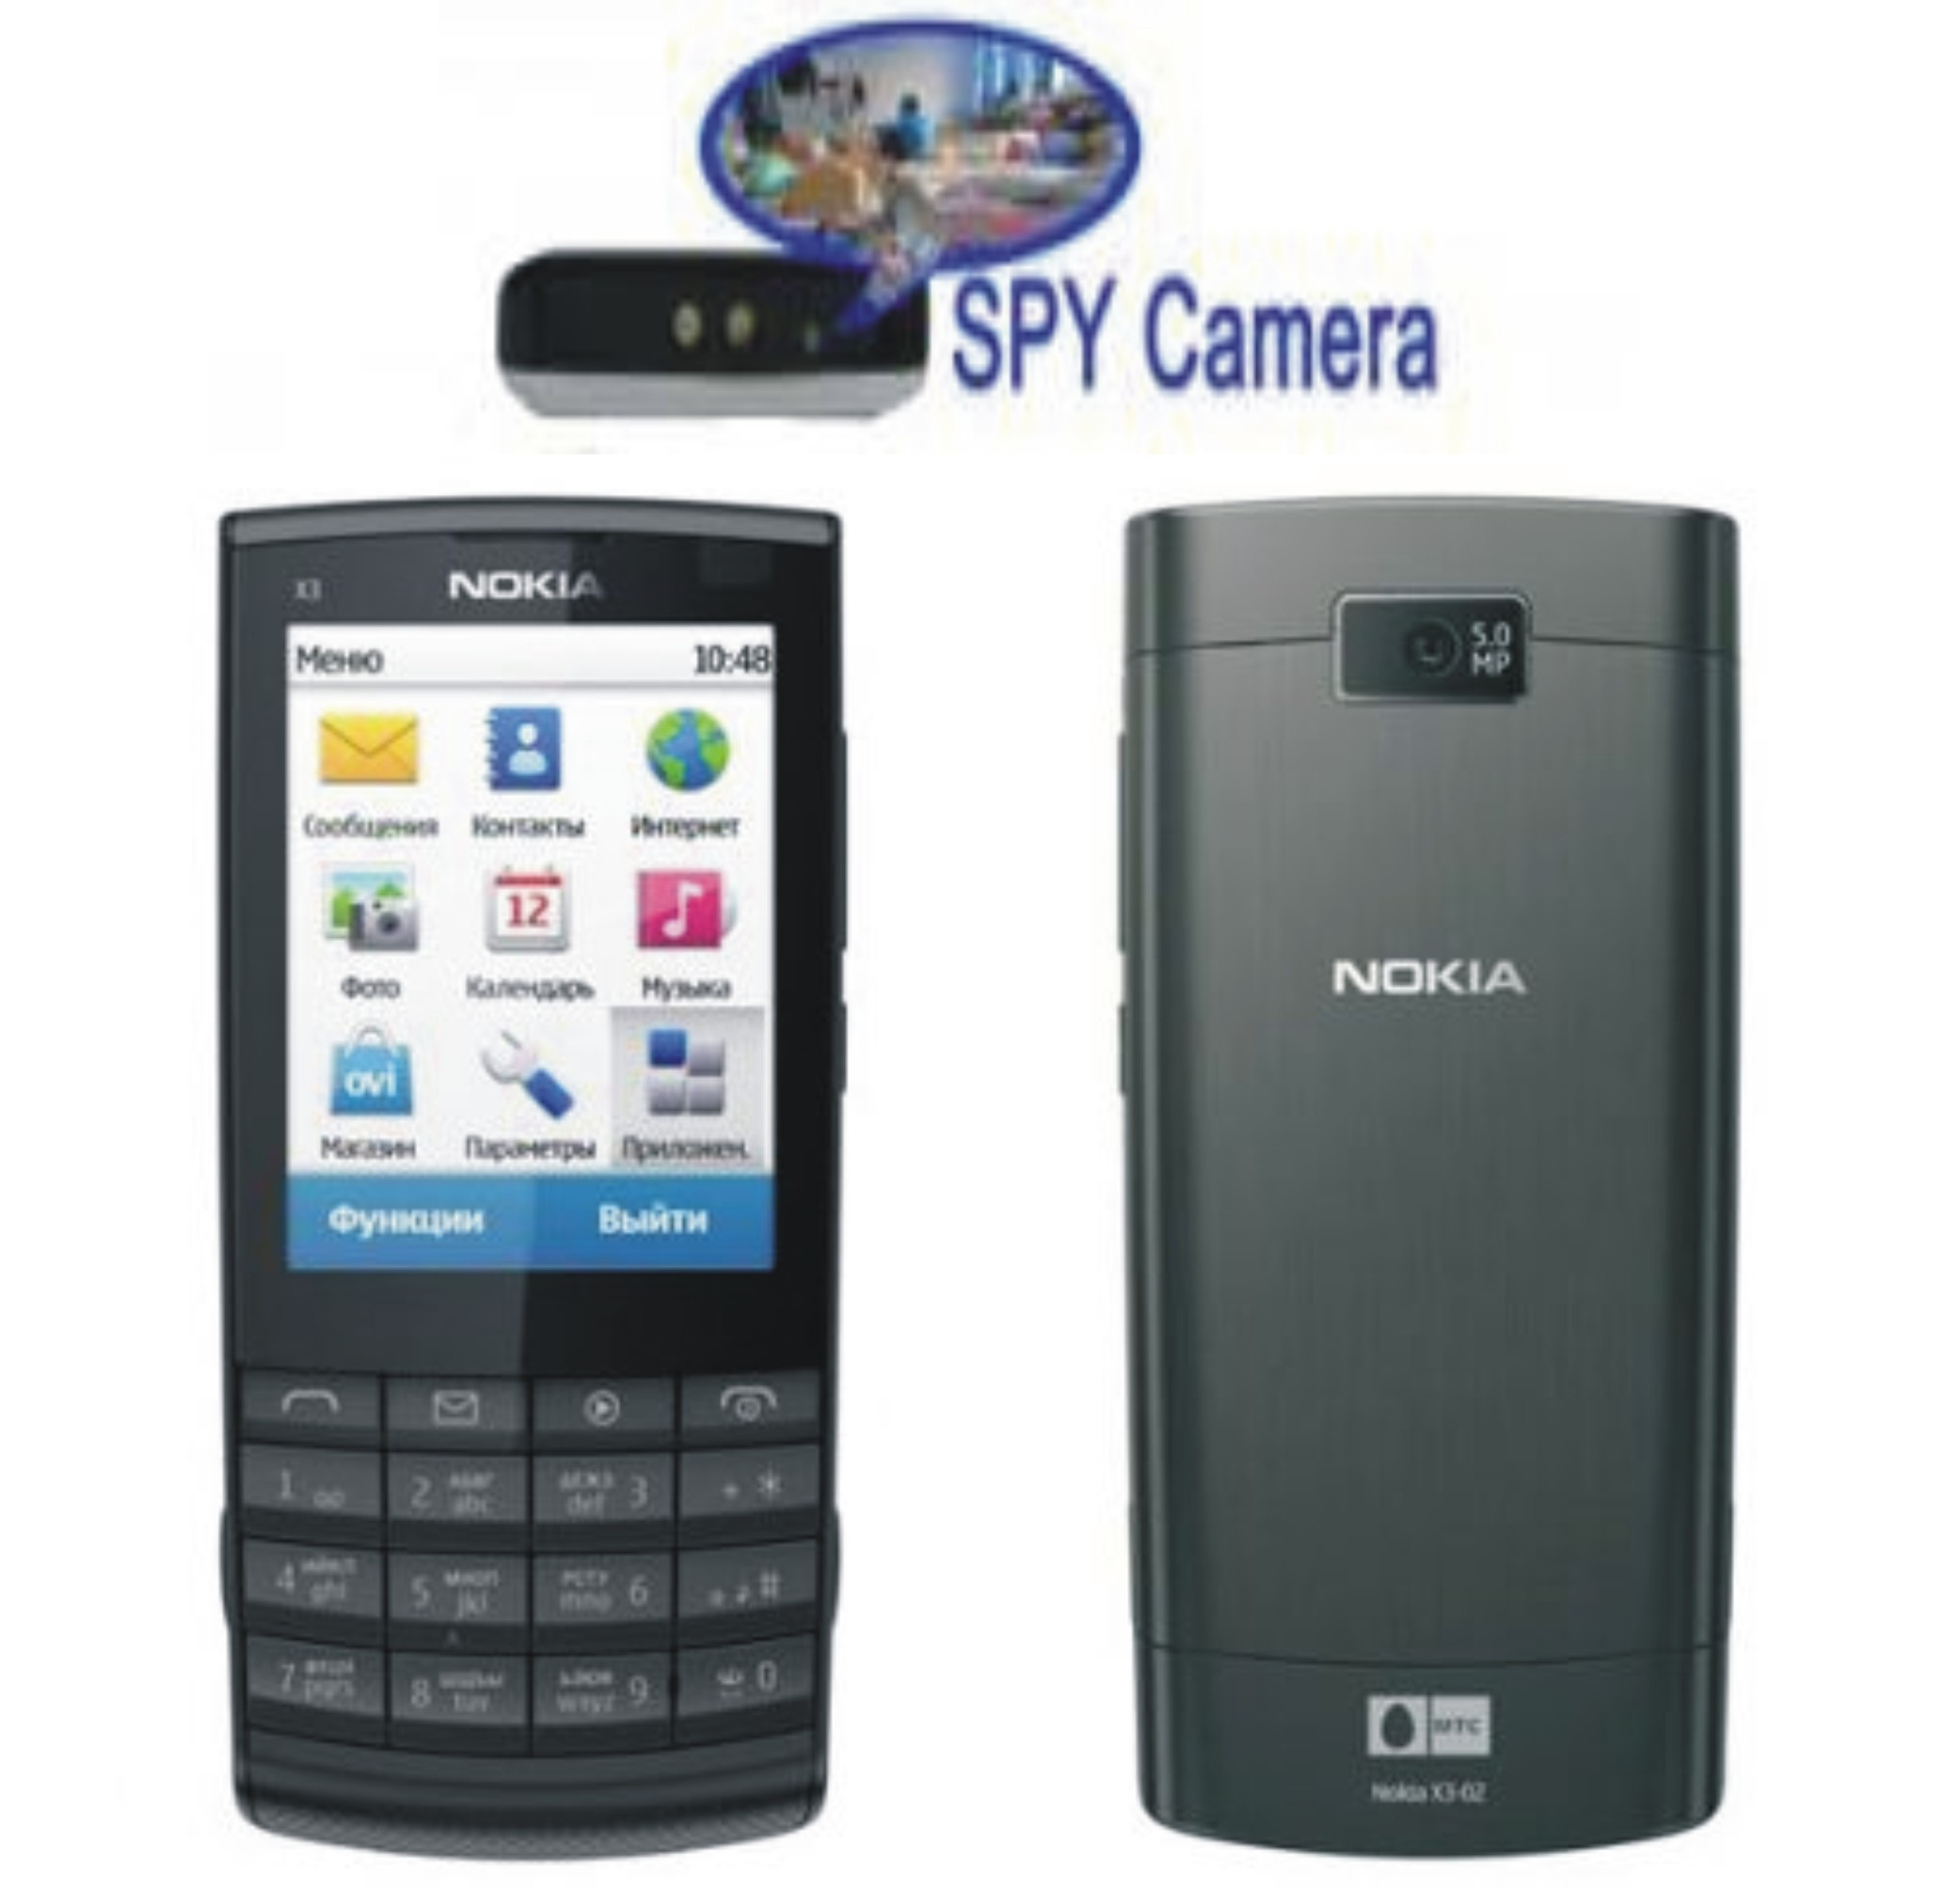 Spy Camera In Nokia Phone Touch Screen In Belgaum